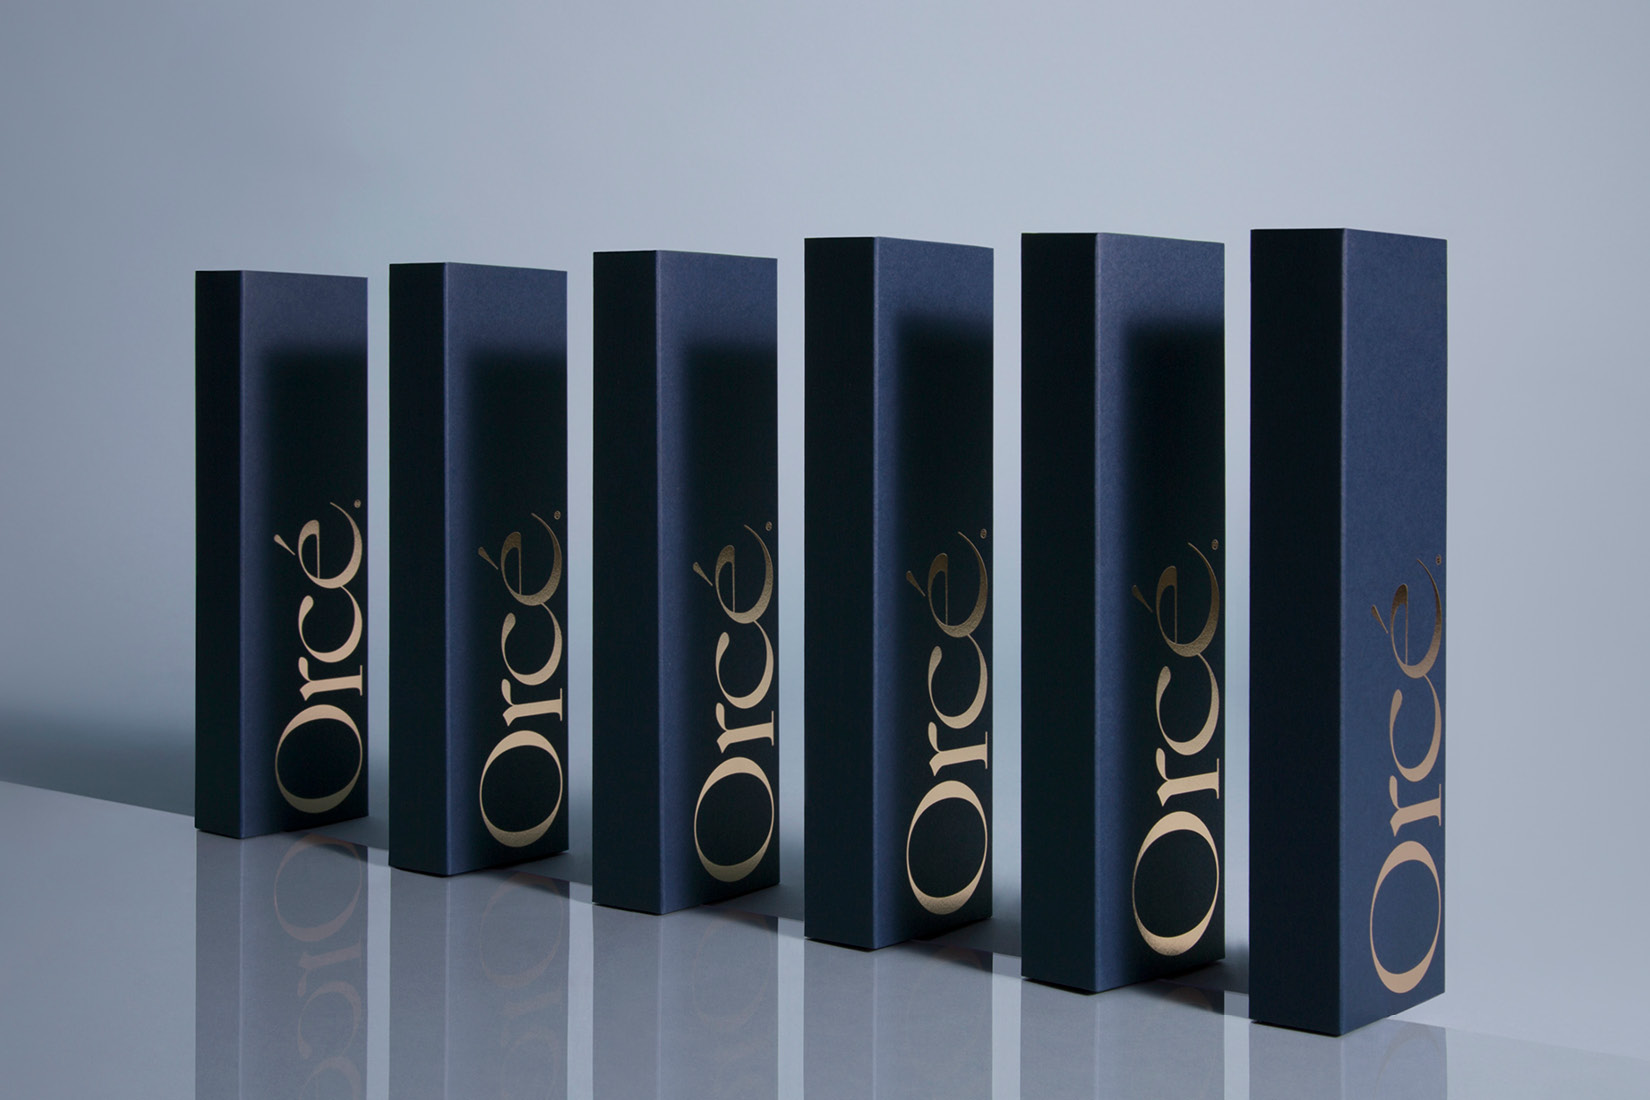 Orce make up designed and packaged by DTE Studio.